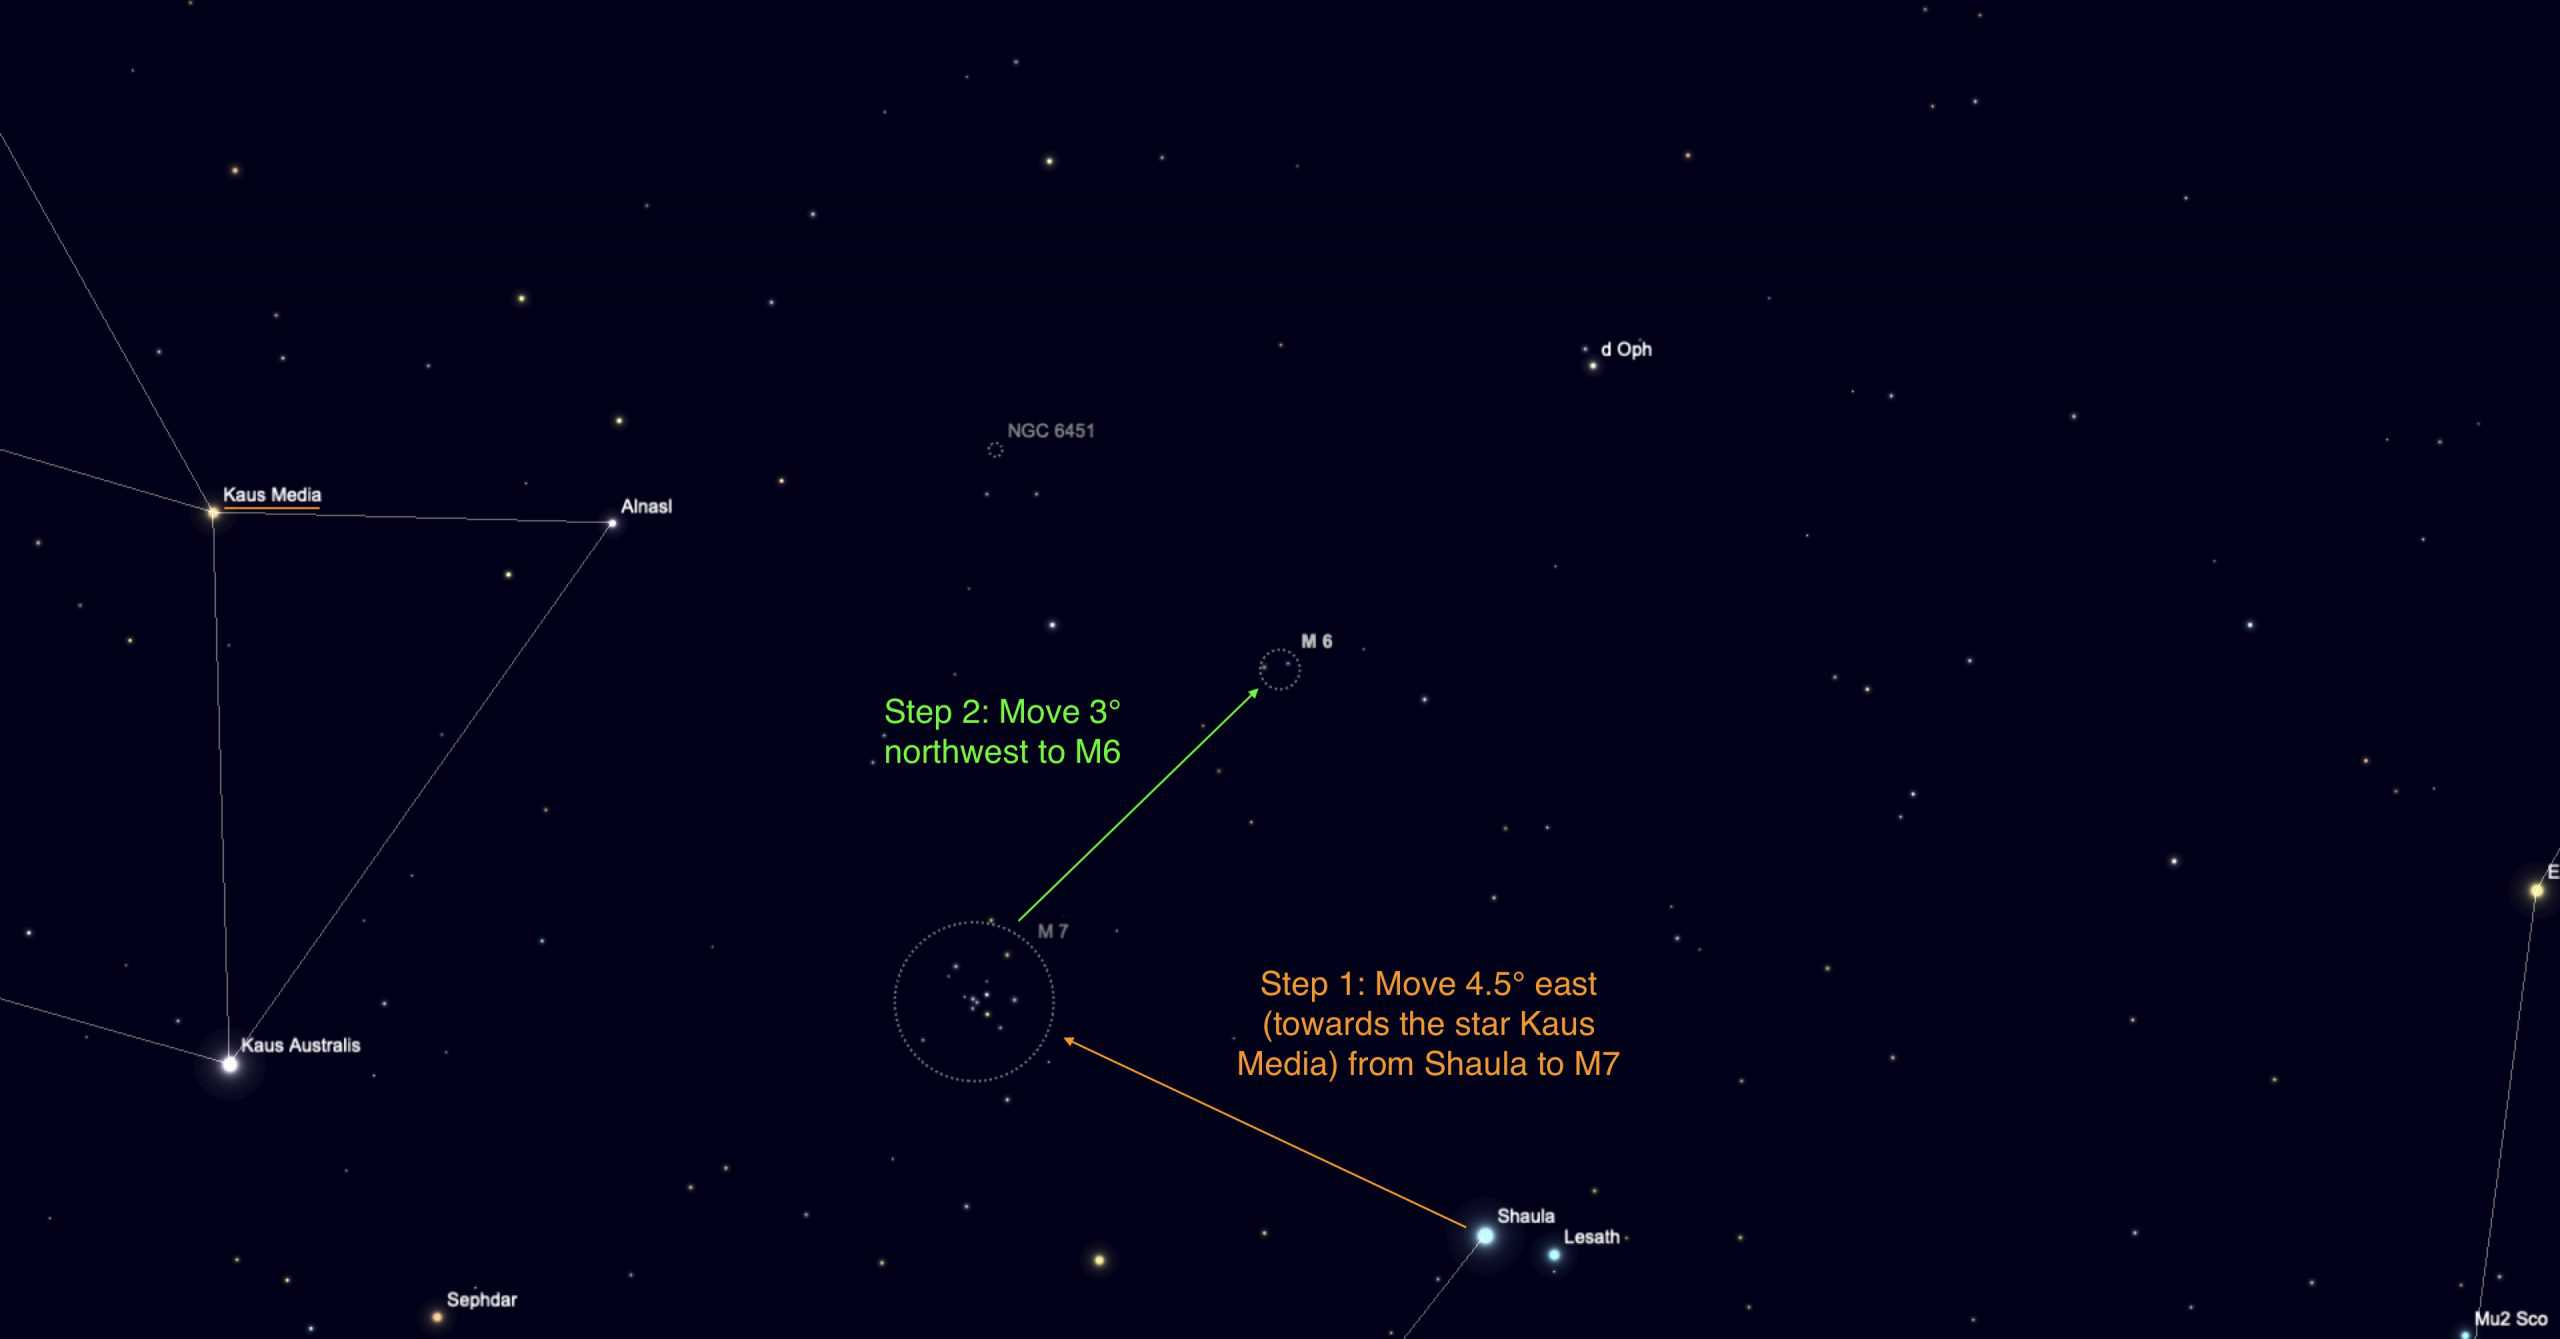 Finding M6 via M7 from Shaula